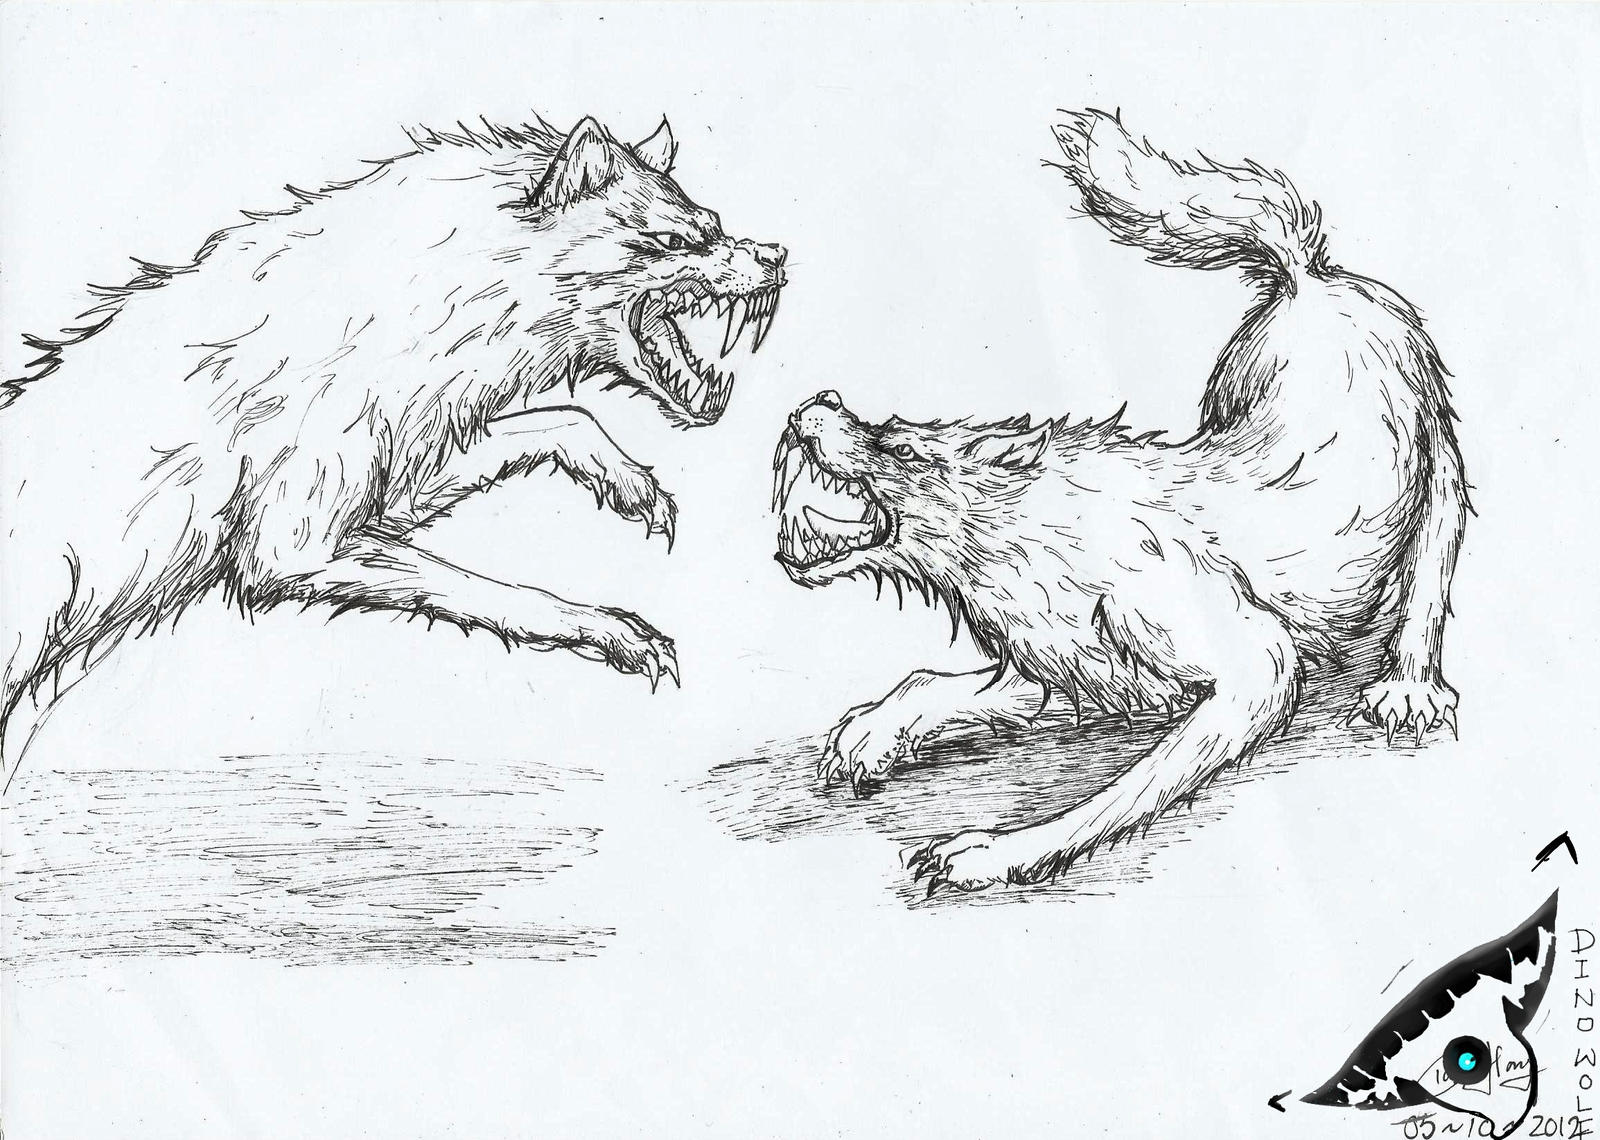 fighting wolf drawings displaying 20 images for fighting wolf drawingsFighting Wolf Drawings